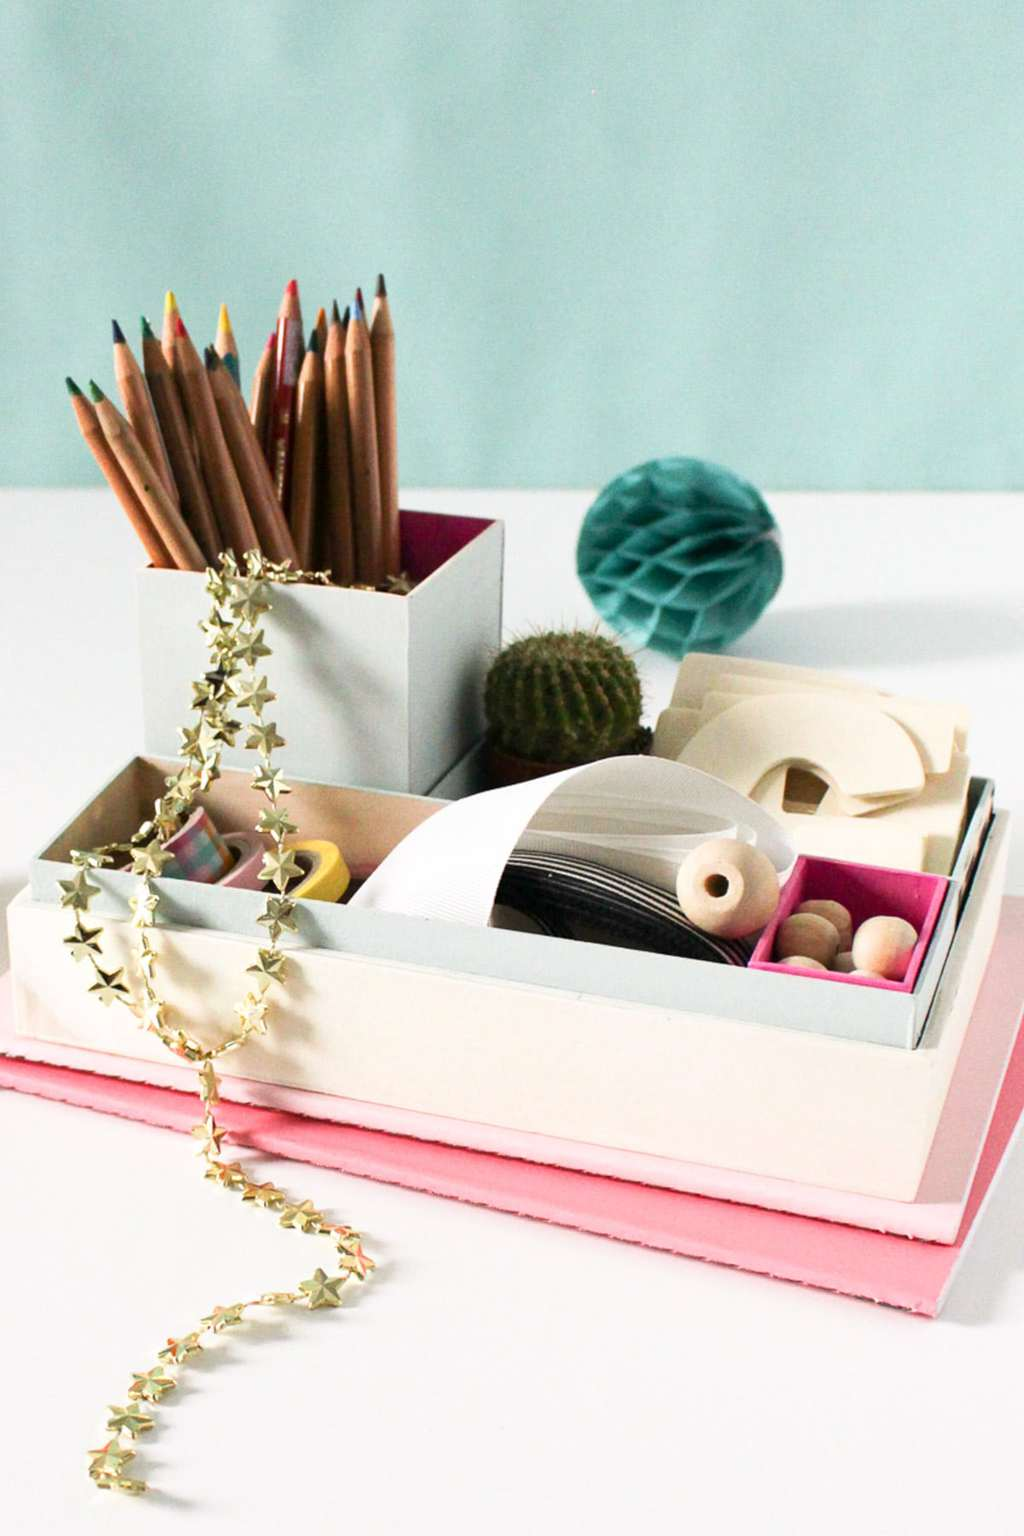 Diy nesting desk organizer sugar cloth diy projects - Desk organizer diy ...